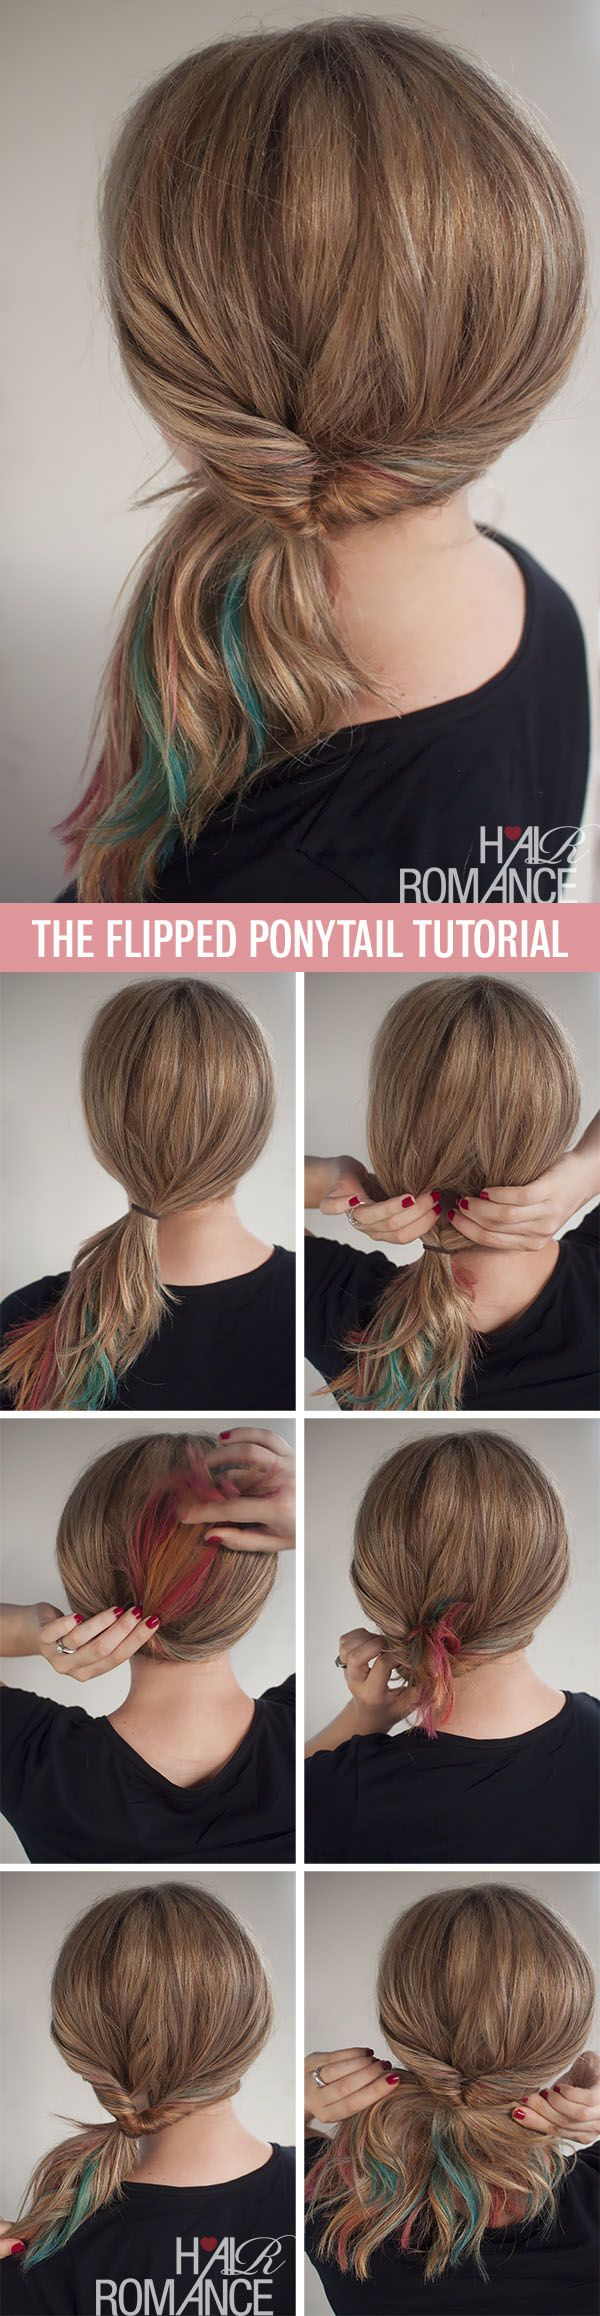 Quick Cute Ponytail Hairstyles Get Cute Hair In Less Than 1 Minute The Flipped Ponytail